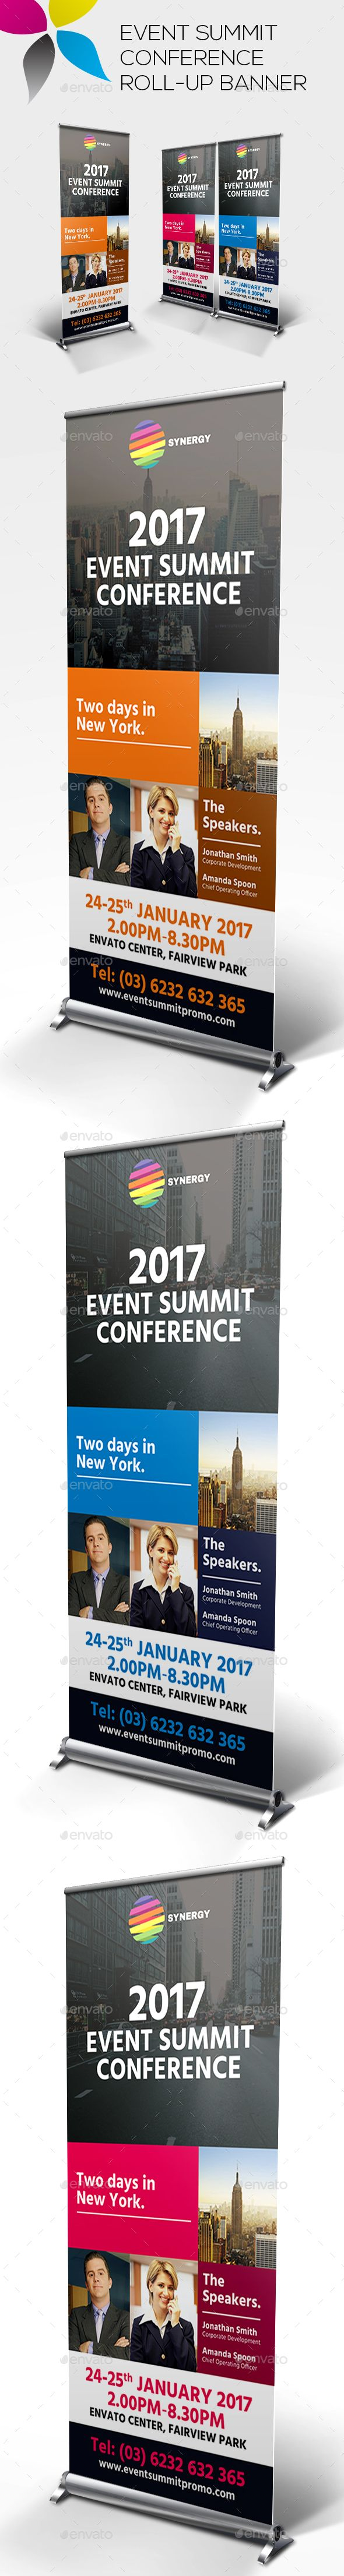 Event Summit Conference Roll-up Banner Template PSD